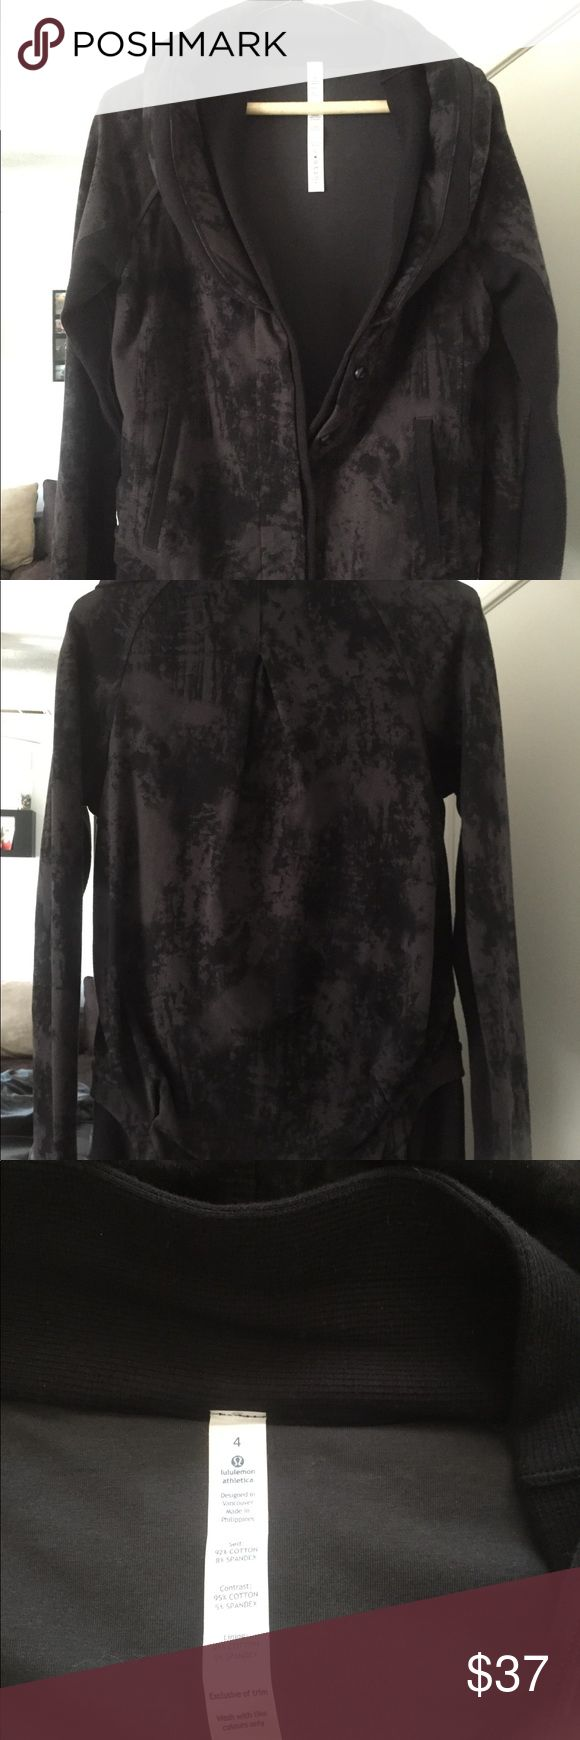 Lululemon jacket Black Lululemon jacket.  Button down.  New w/o tags.  Never been worn.  Got it during an online warehouse sale and never wore it.  Thumb holes in sleeve, folded collar.  Marble black color lululemon athletica Jackets & Coats Utility Jackets